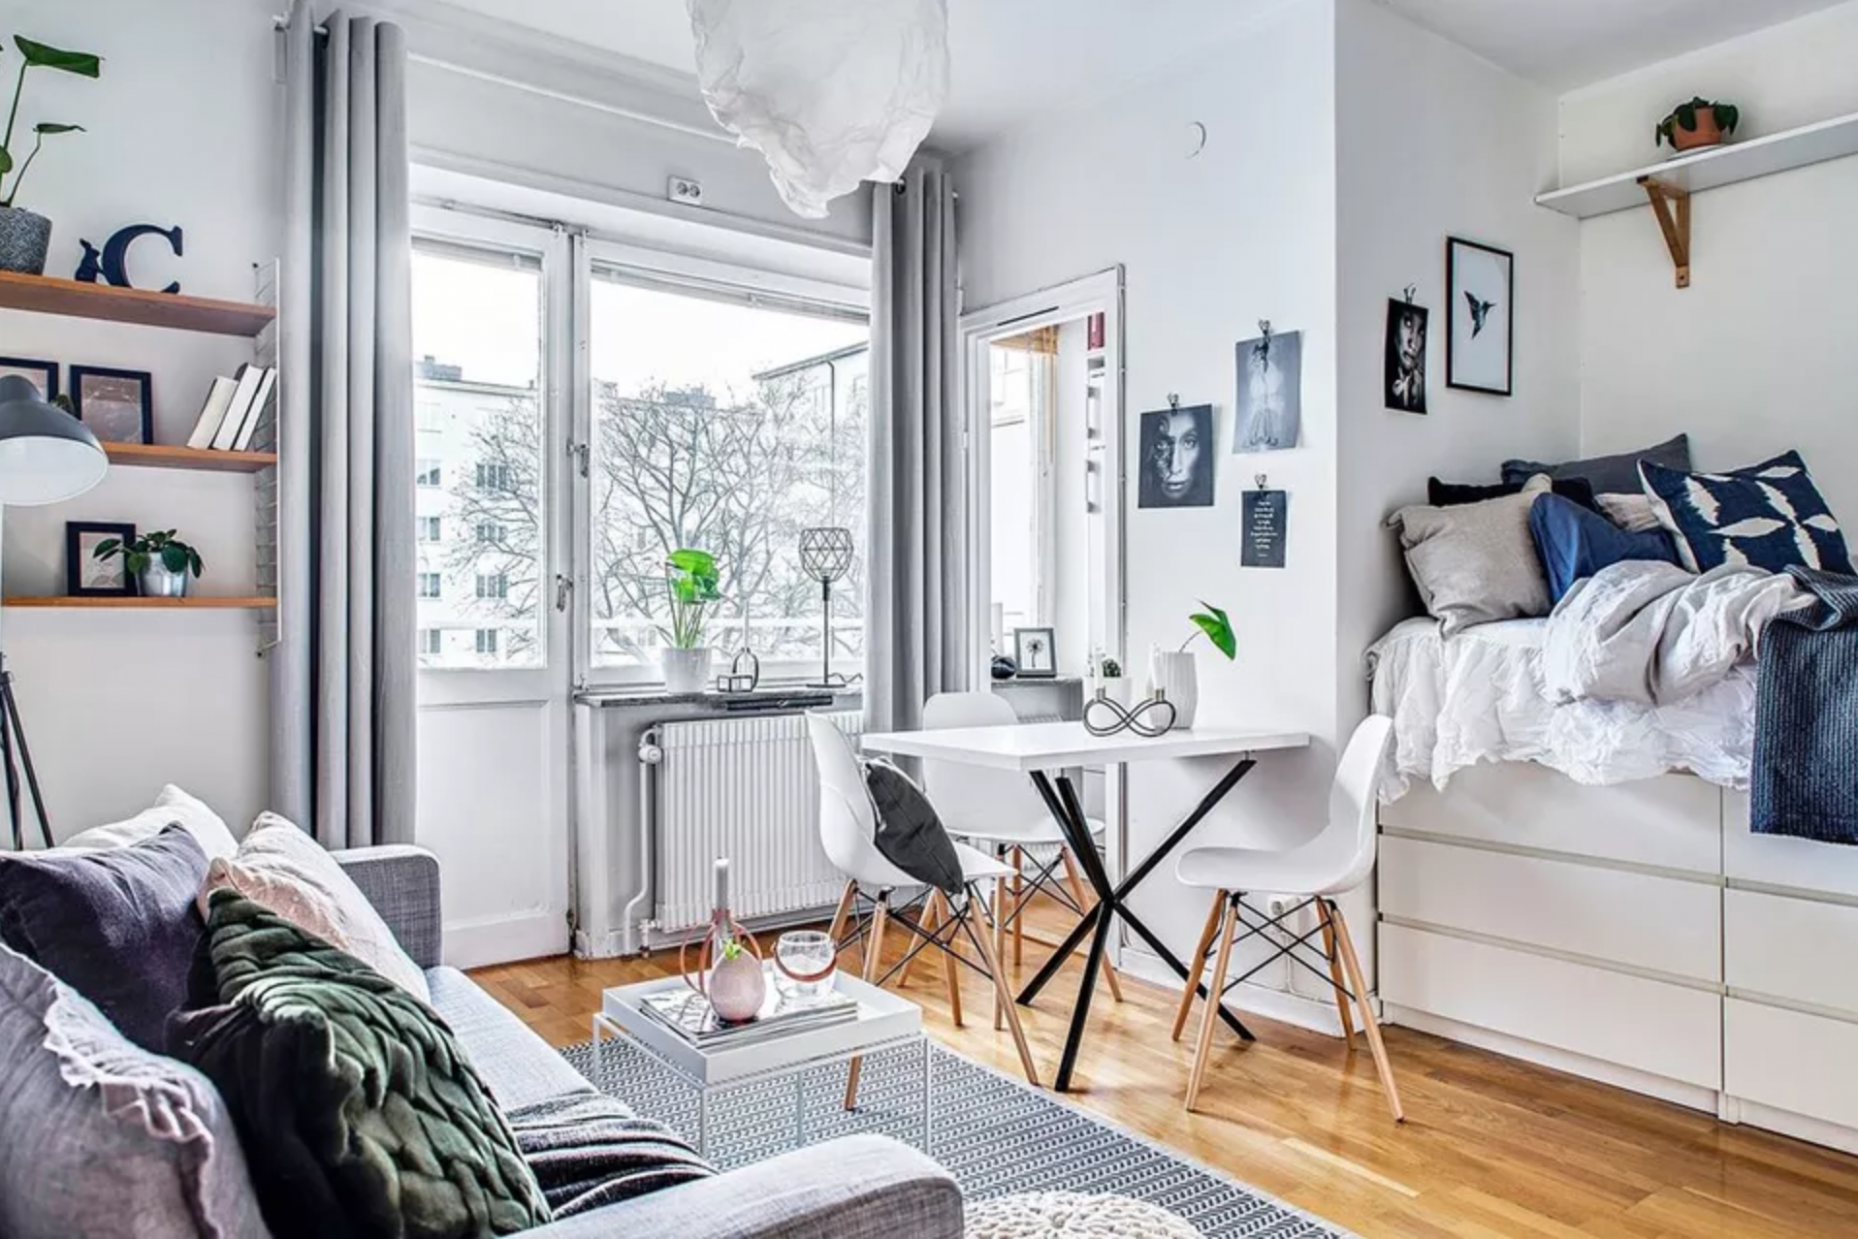 12 Perfect Studio Apartment Layouts That Work - tiny apartment design under 200 sf